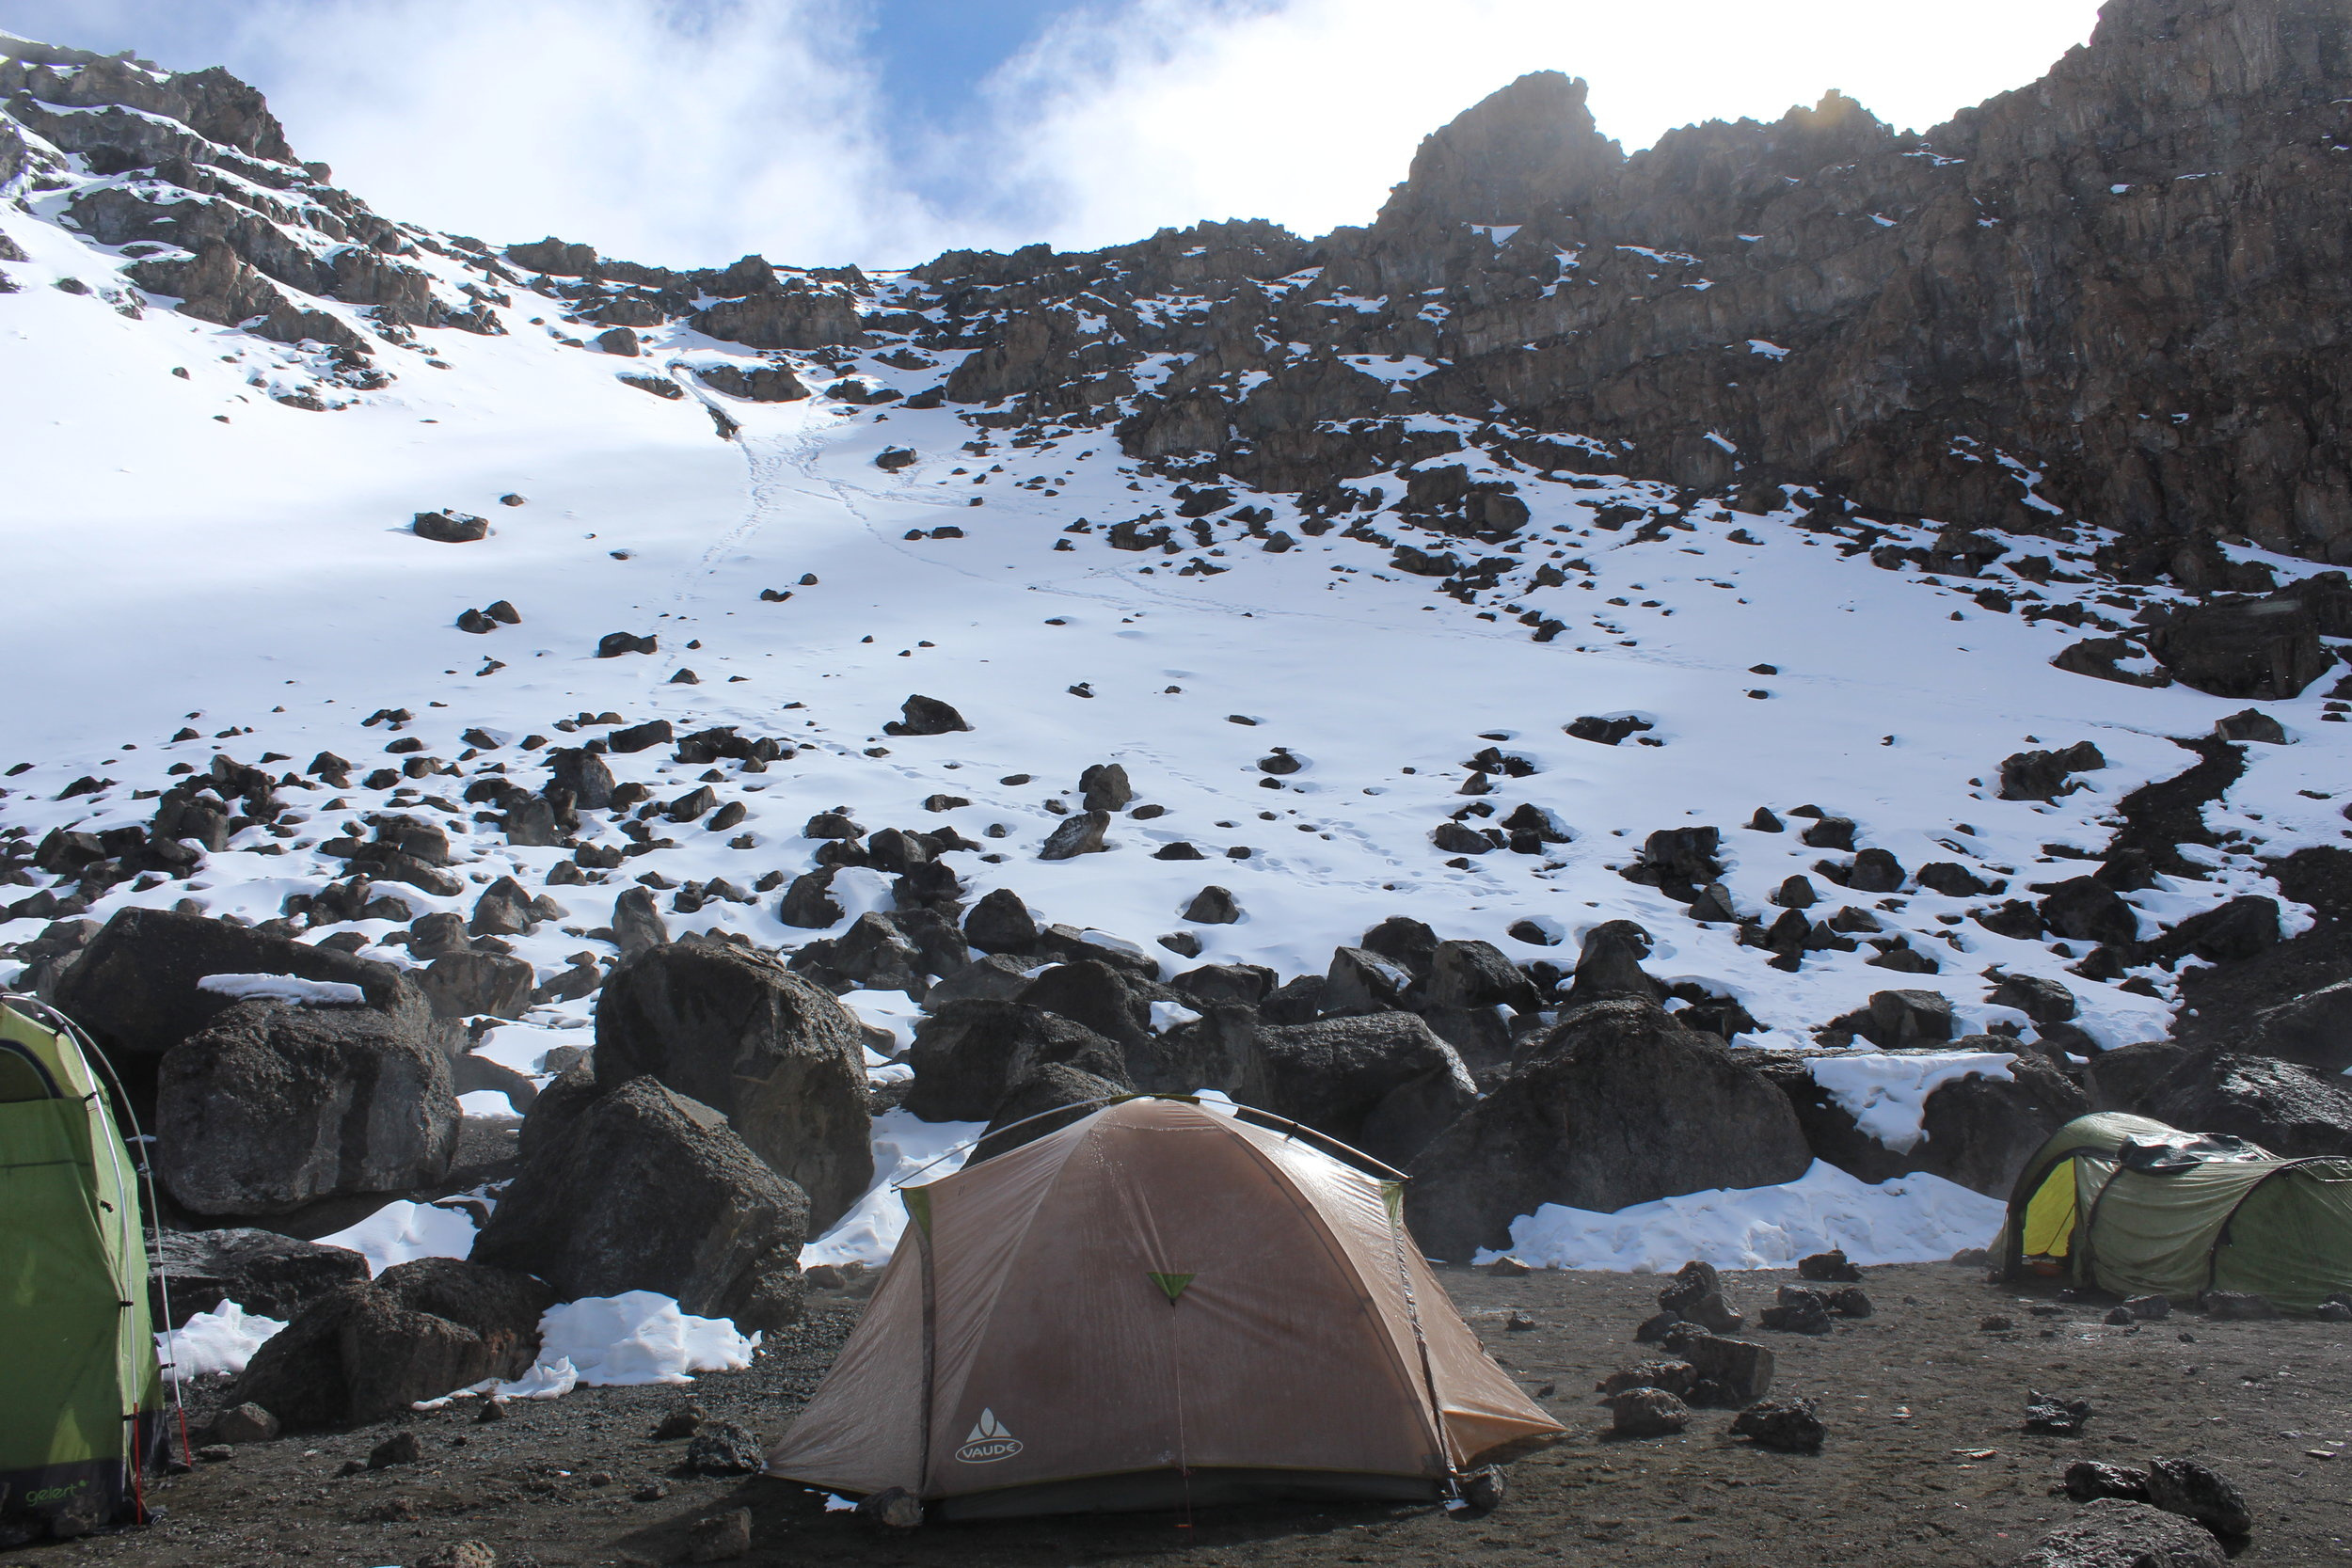 View from our tent at Crater Camp. This is looking up at where we came down from the summit.